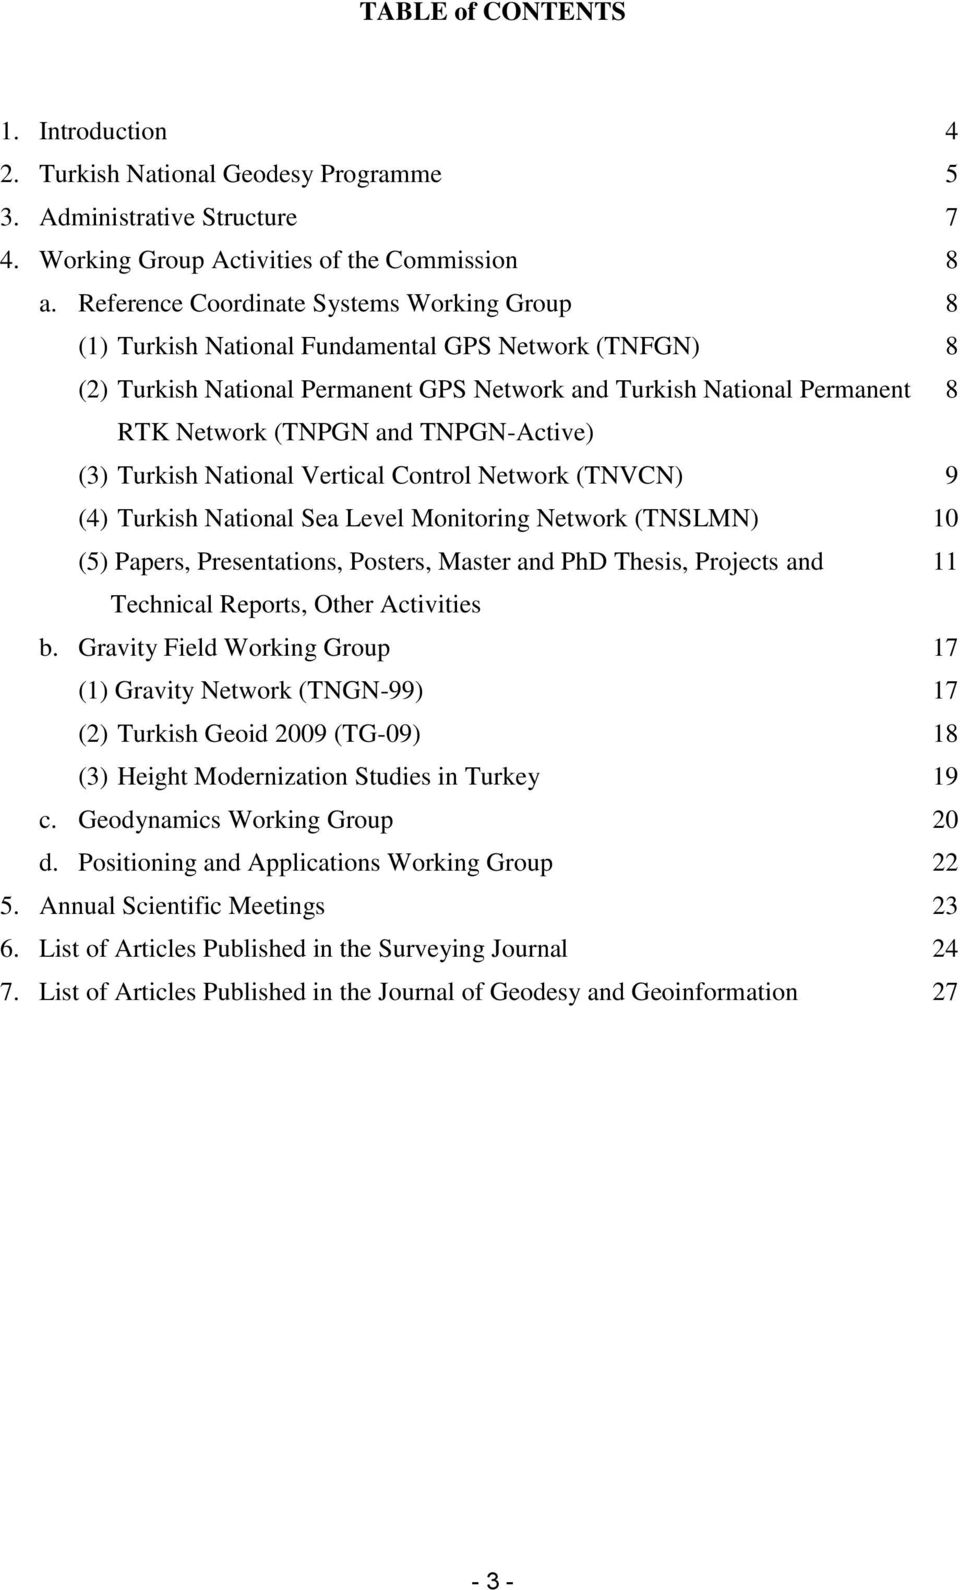 TNPGN-Active) (3) Turkish National Vertical Control Network (TNVCN) 9 (4) Turkish National Sea Level Monitoring Network (TNSLMN) 10 (5) Papers, Presentations, Posters, Master and PhD Thesis, Projects